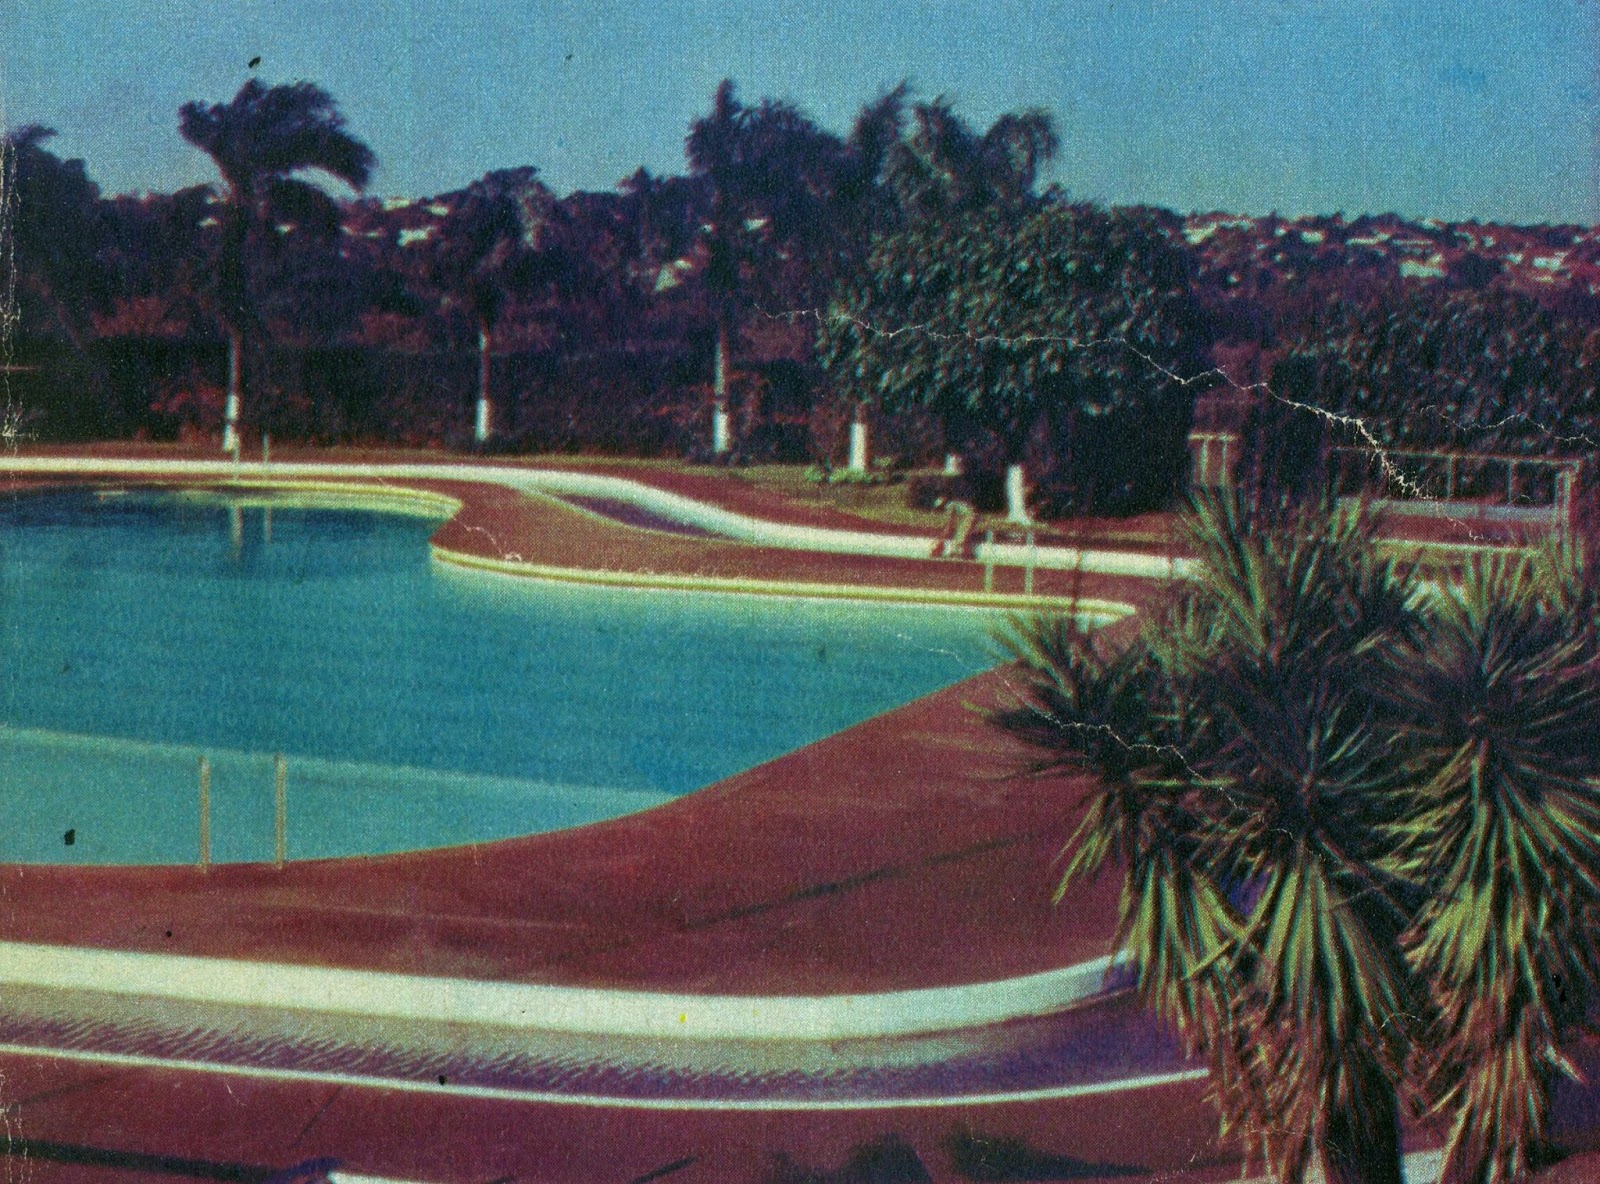 Piscina do Country Club de Maringá - 1972